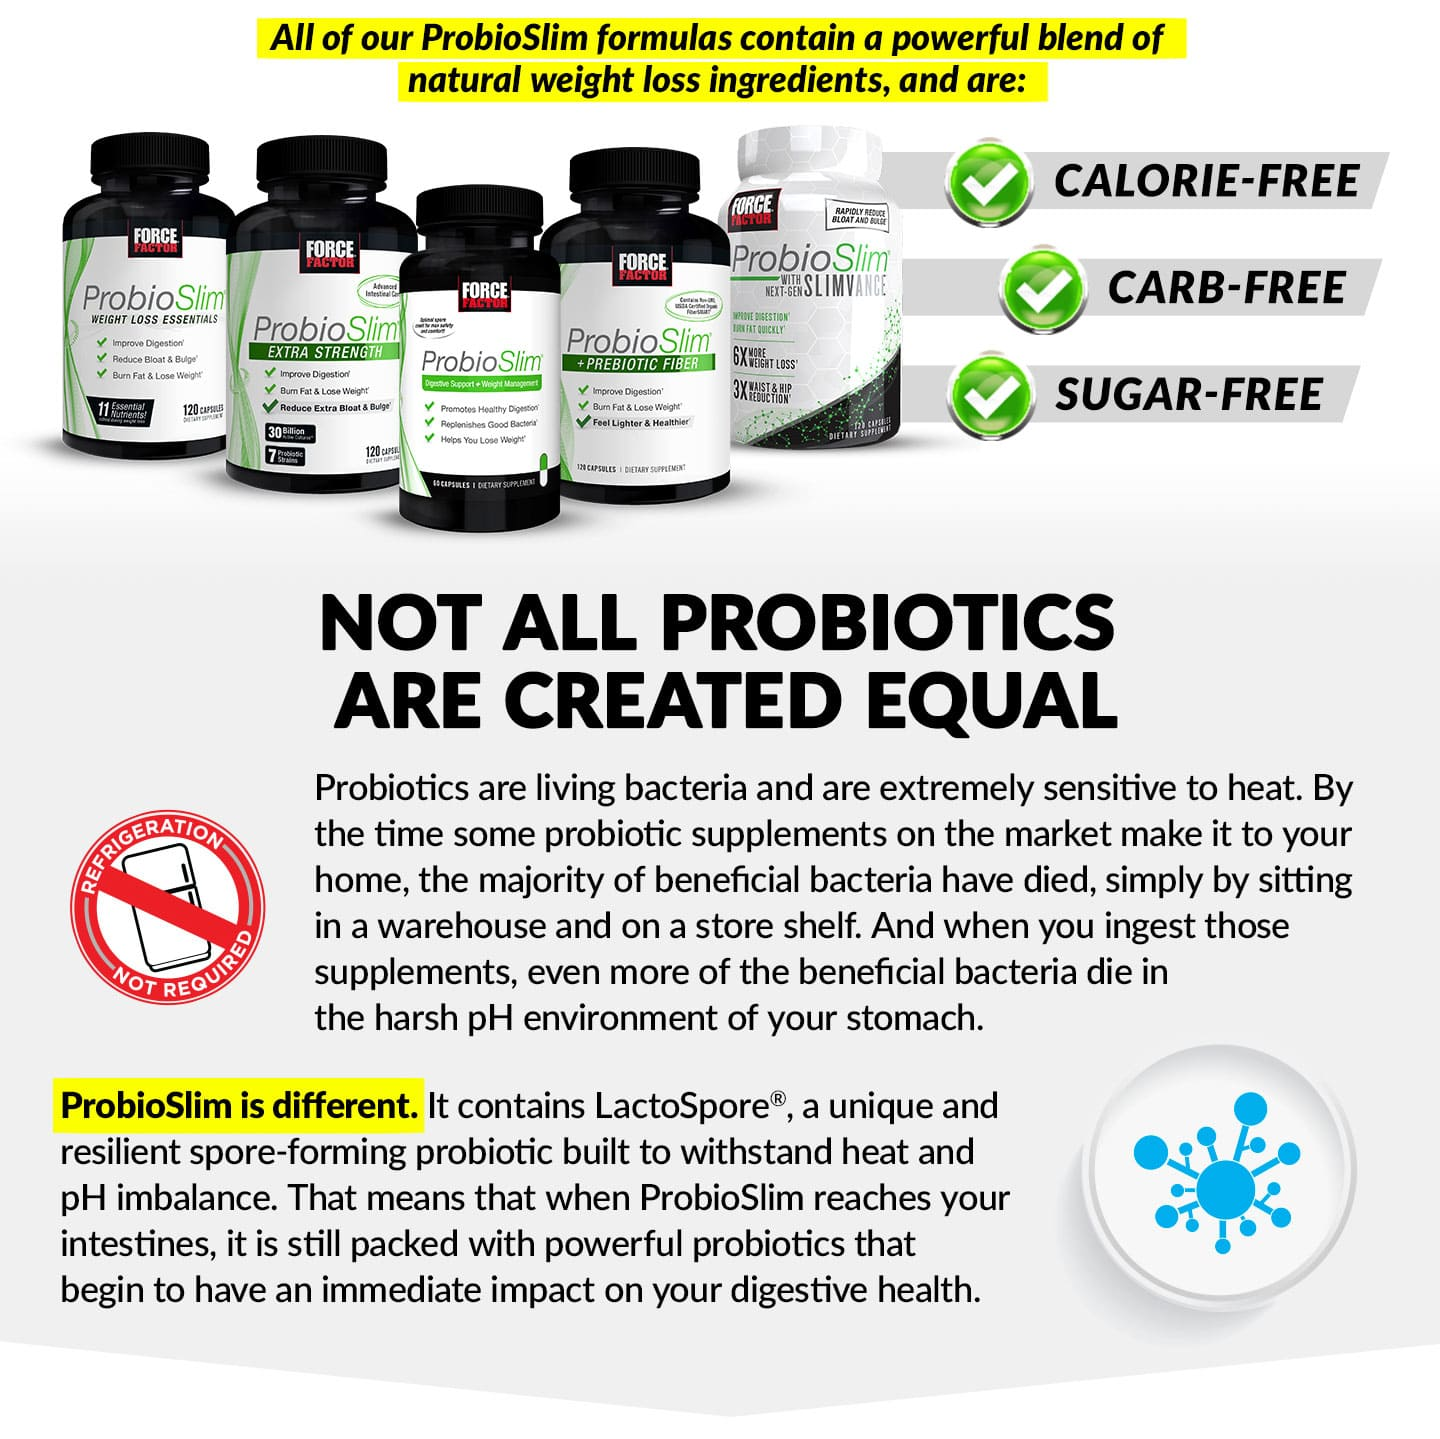 All of our ProbioSlim formulas contain a powerful blend of natural weight loss ingredients, and are: CALORIE-FERE, CARB-FREE, SUGAR-FREE. NOT ALL PROBIOTICS ARE CREATED EQUAL. Probiotics are living bacteria and are extremely sensitive to heat. By the time most probiotic supplements on the market make it to your home, the majority of beneficial bacteria have died, simply by sitting in a warehouse and on a store shelf. And when you ingest those supplements, even more of the beneficial bacteria die in the harsh pH environment of your stomach. ProbioSlim is different. These formulas all contain LactoSpore®, a unique and resilient spore-forming probiotic built to withstand heat and pH imbalance. That means that when ProbioSlim reaches your intestines, it is still packed with powerful probiotics that begin to have an immediate impact on your digestive health.